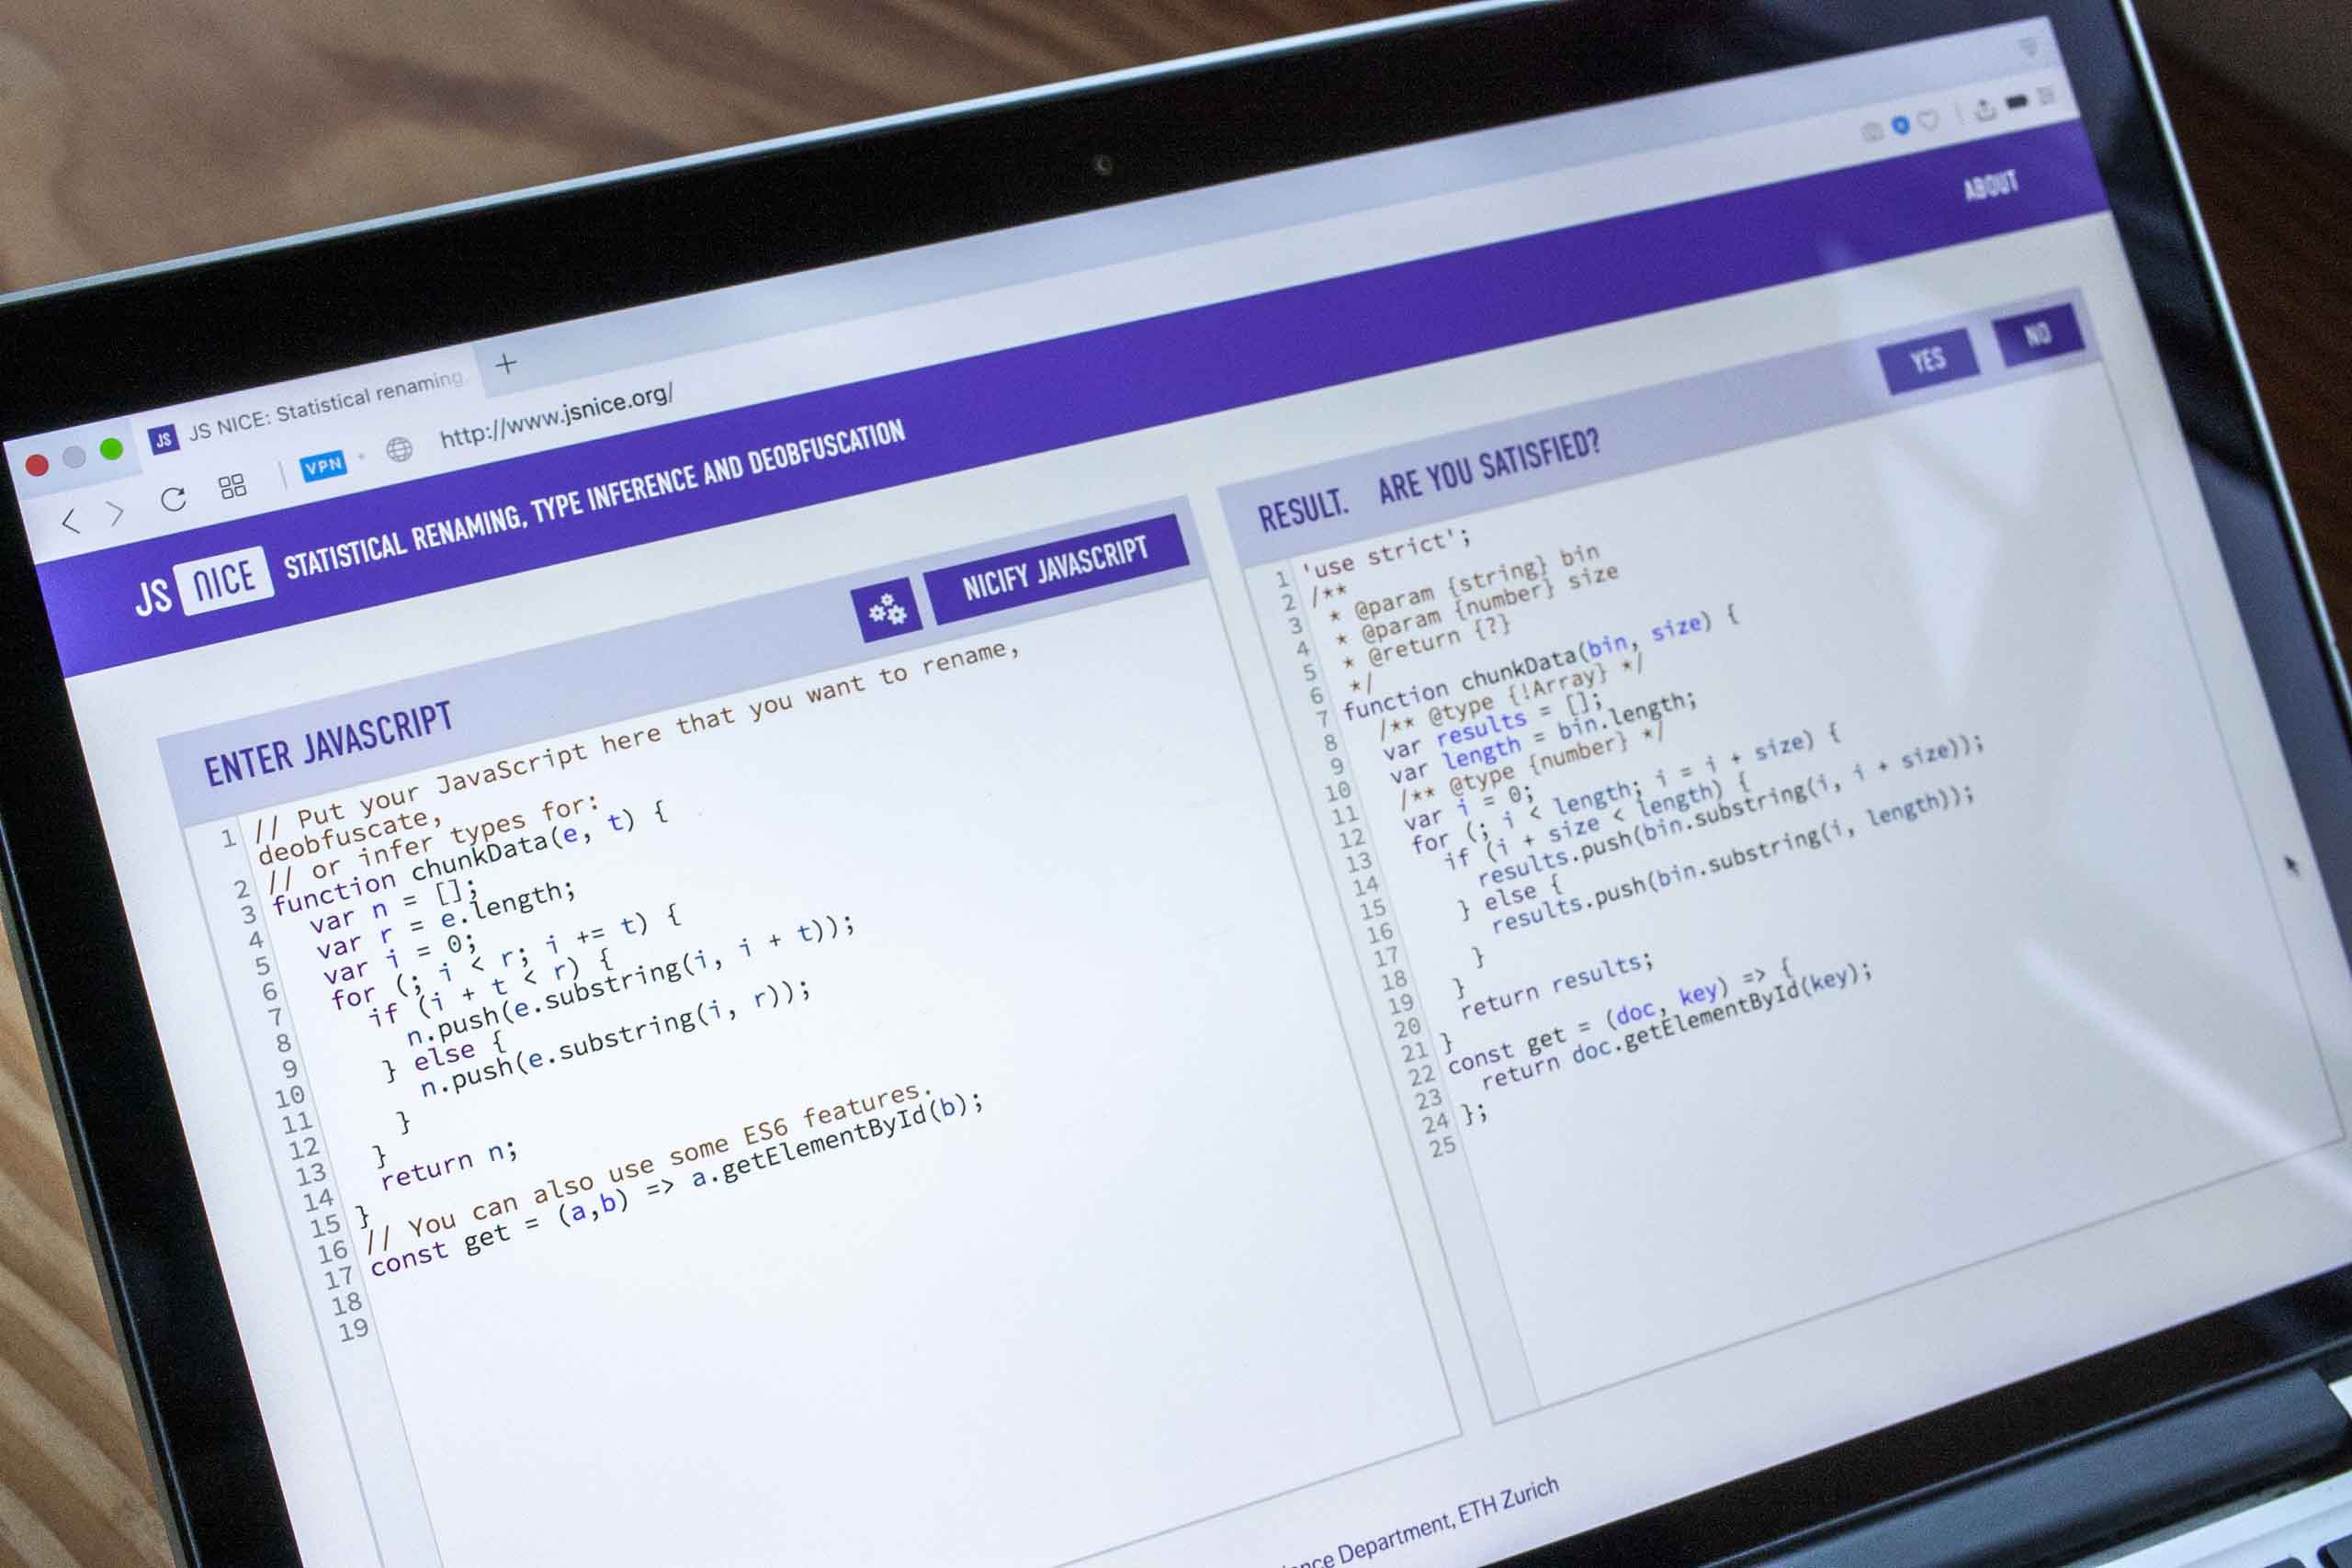 Photograph of the JS Nice application screen on a laptop showing the full details the the purple brand accents — by Yagnyuk.